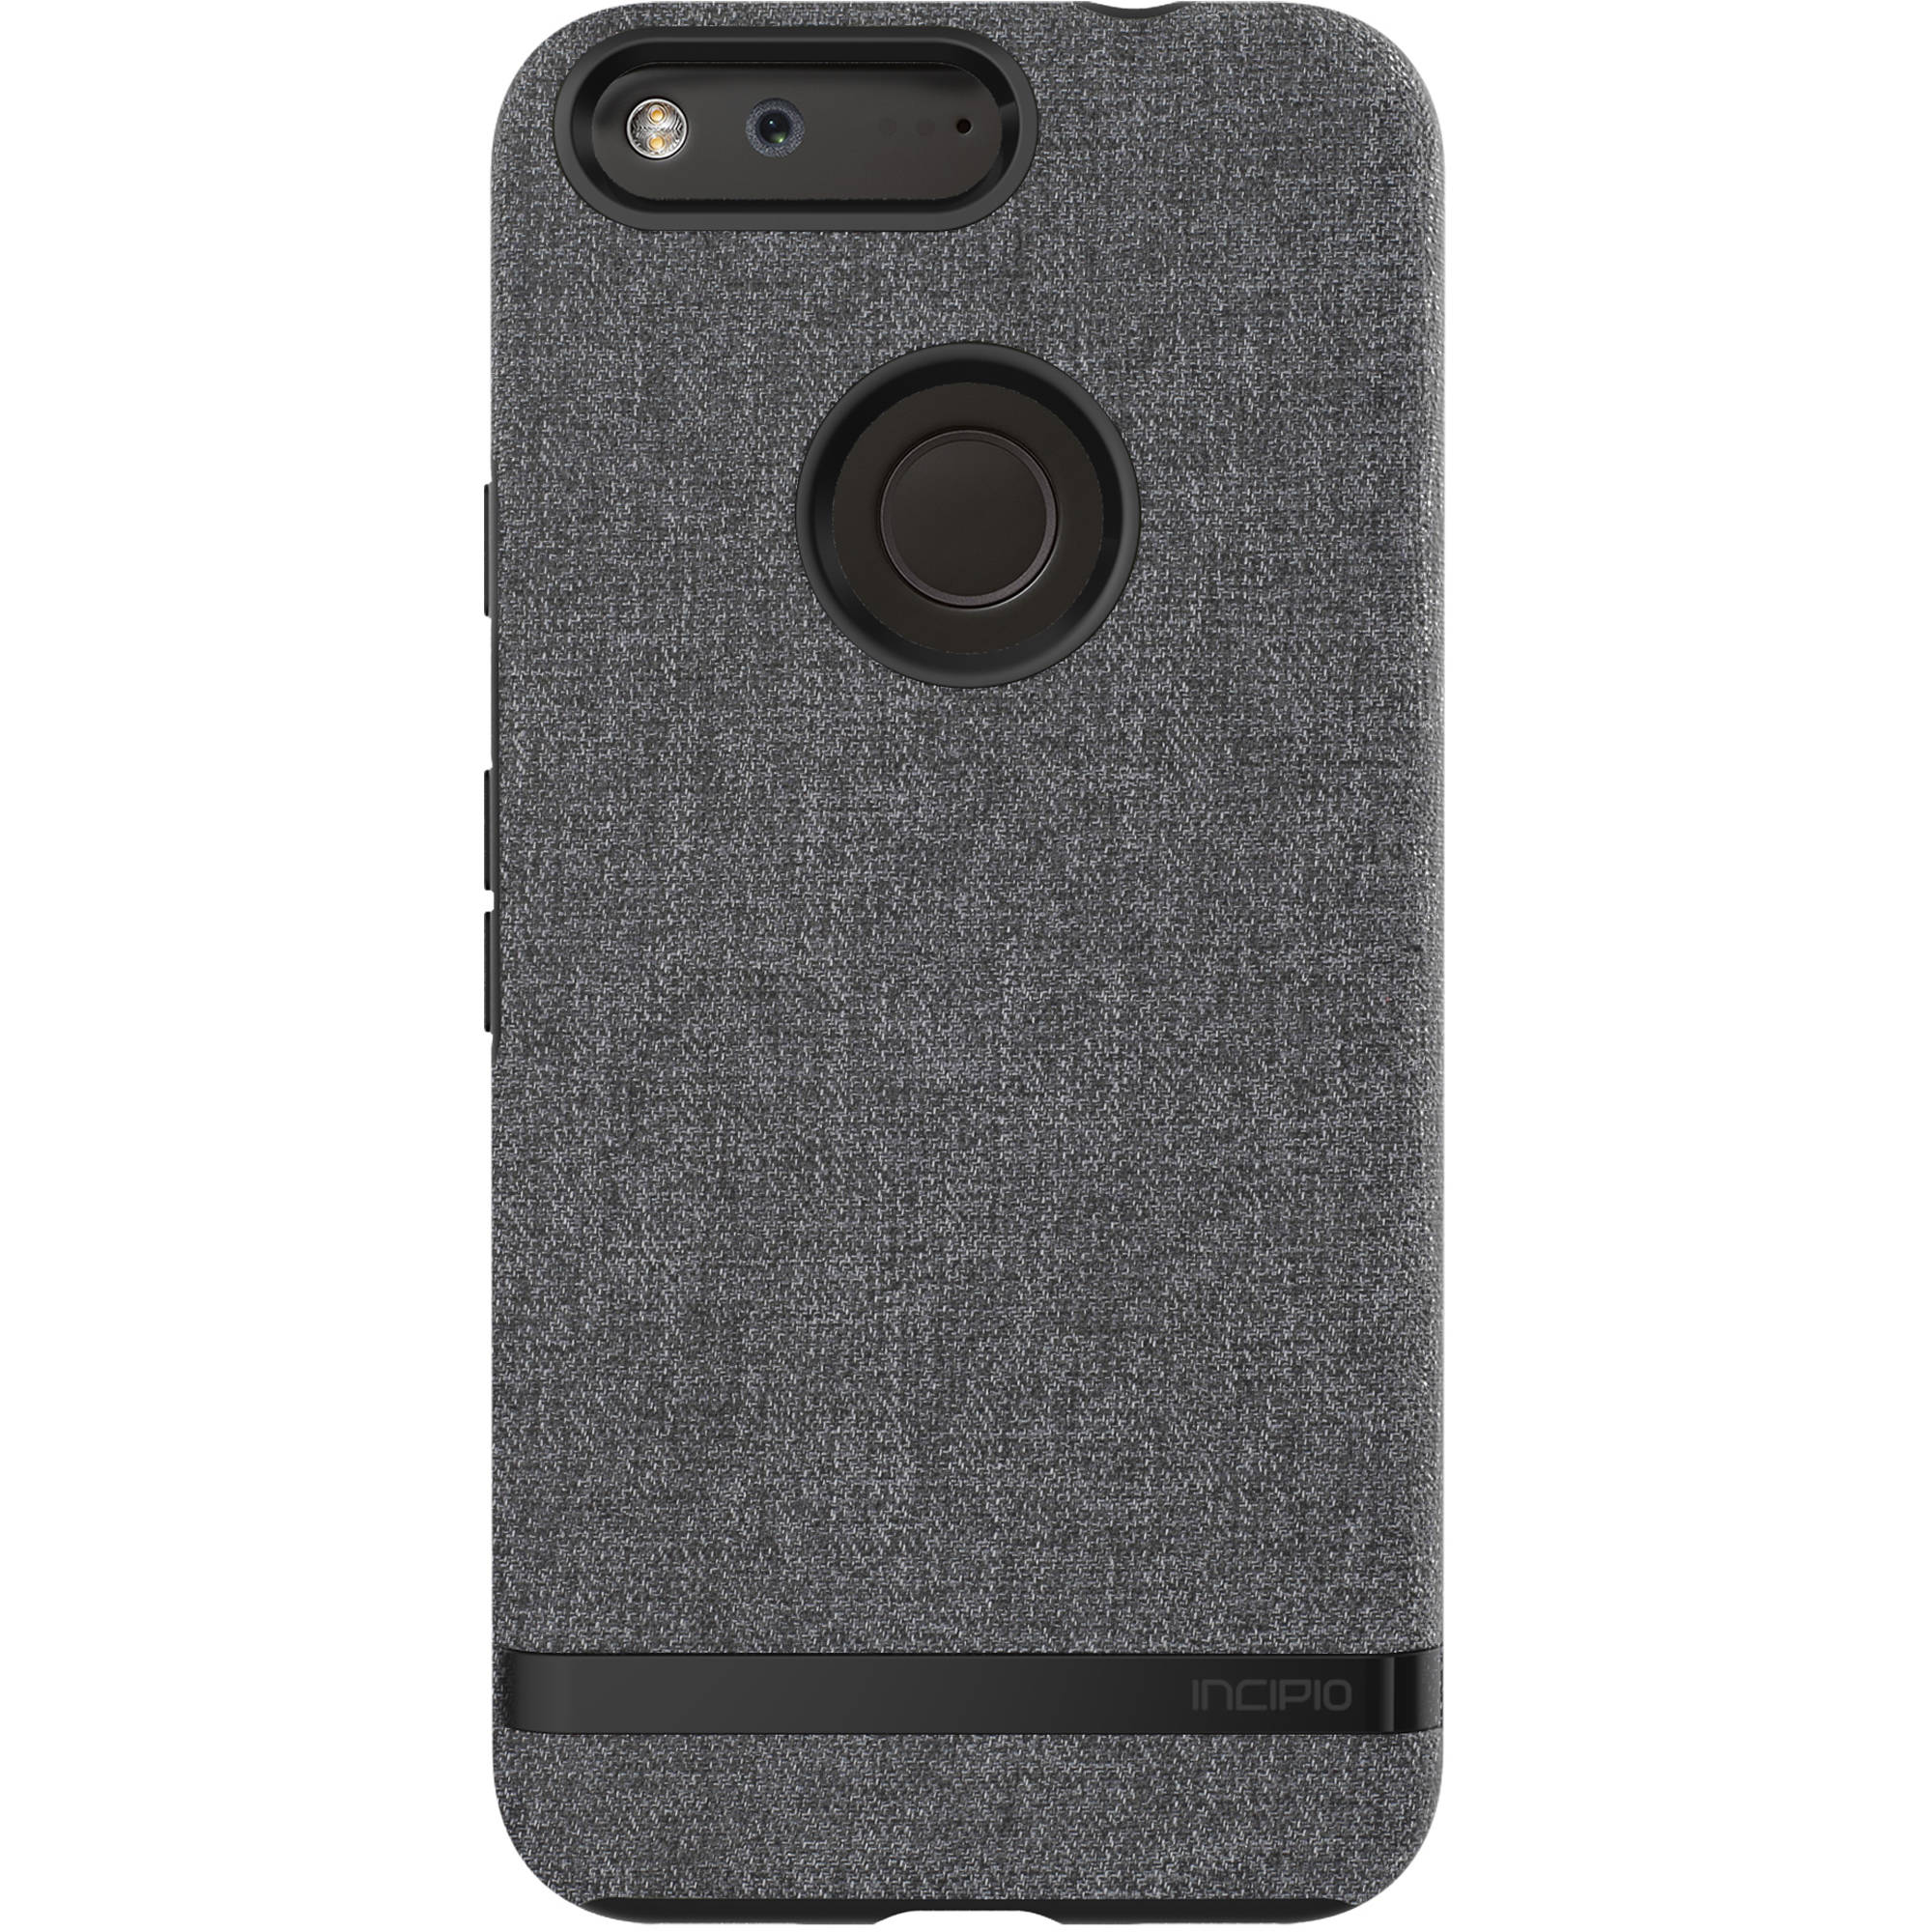 online retailer d7d81 5bb3d Incipio Esquire Case for Google Pixel XL (Gray)